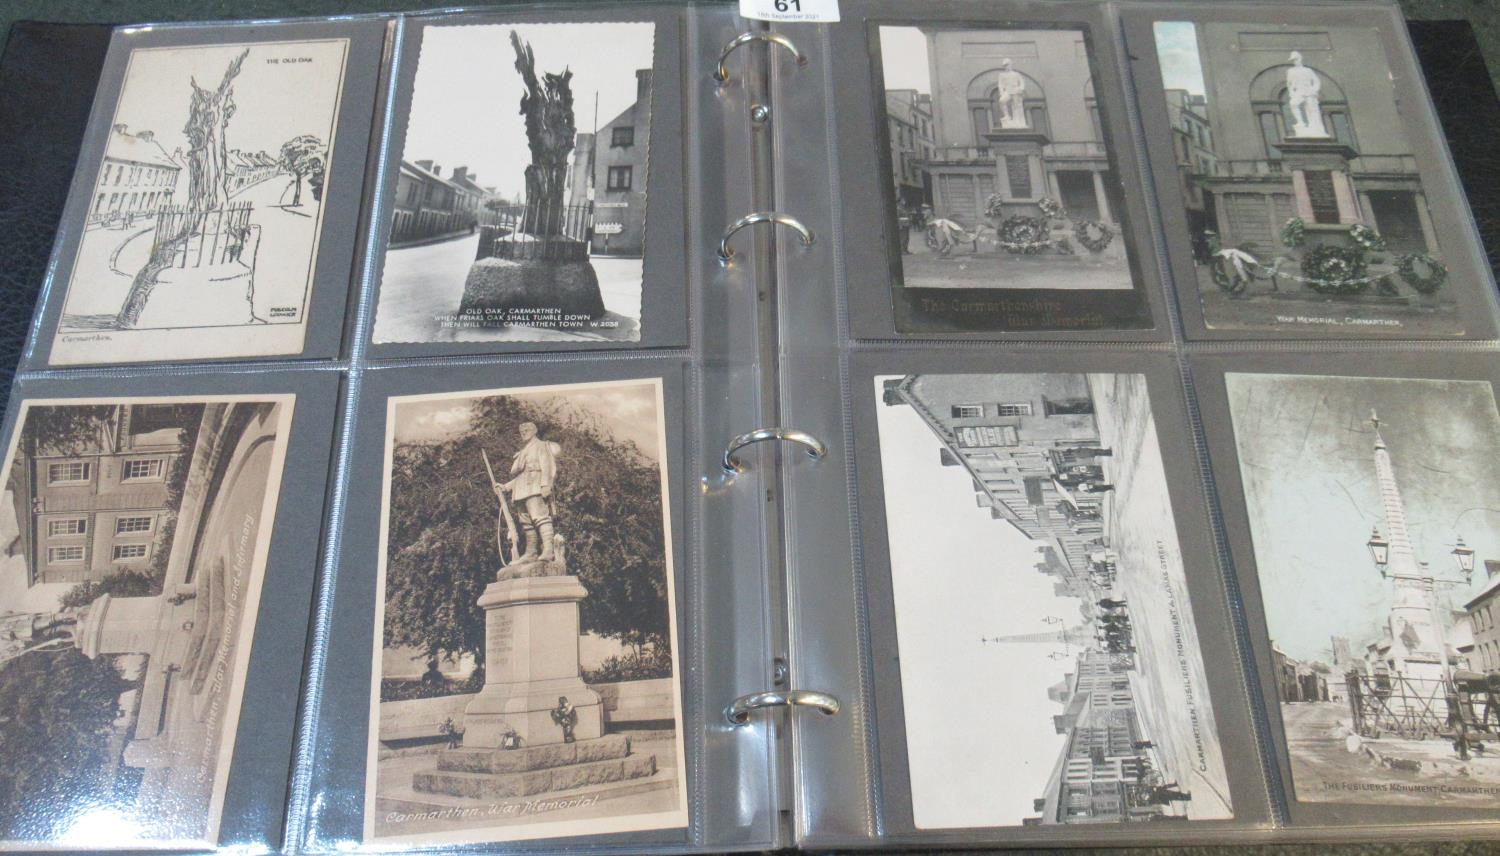 Postcards of Carmarthenshire in black album; Notts square, Guildhall square, The Old Oak, War